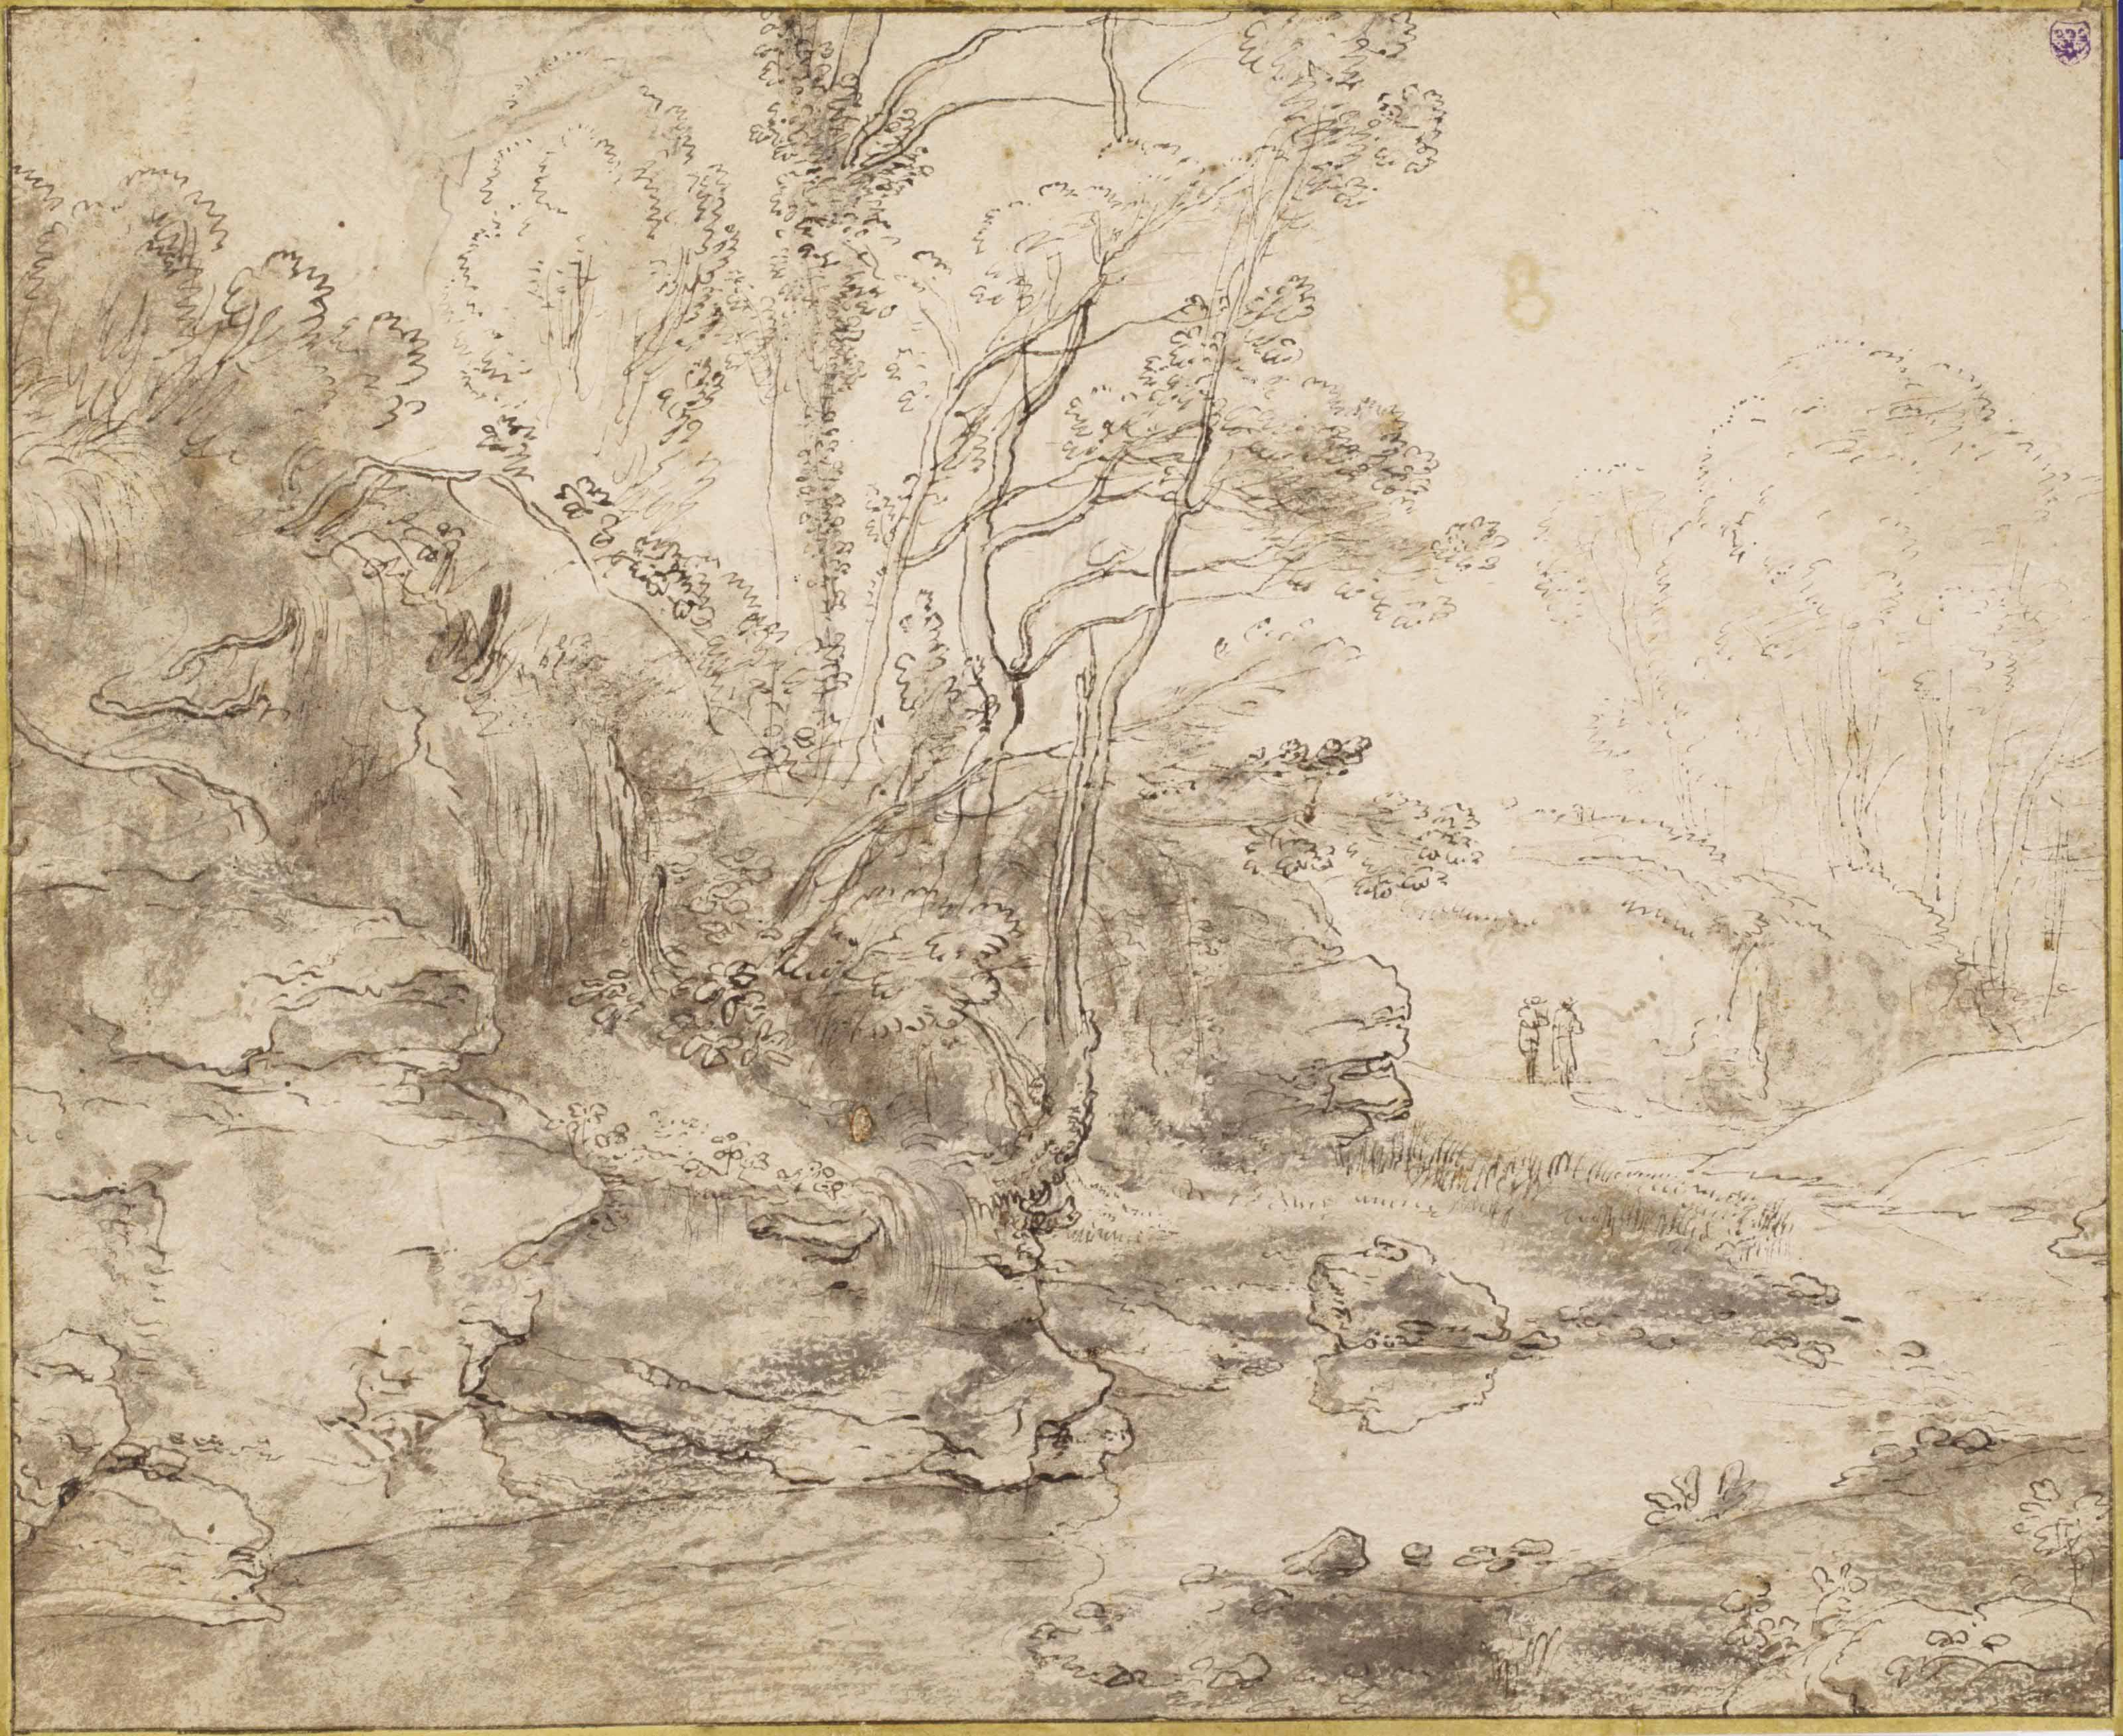 A stream in a hilly landscape